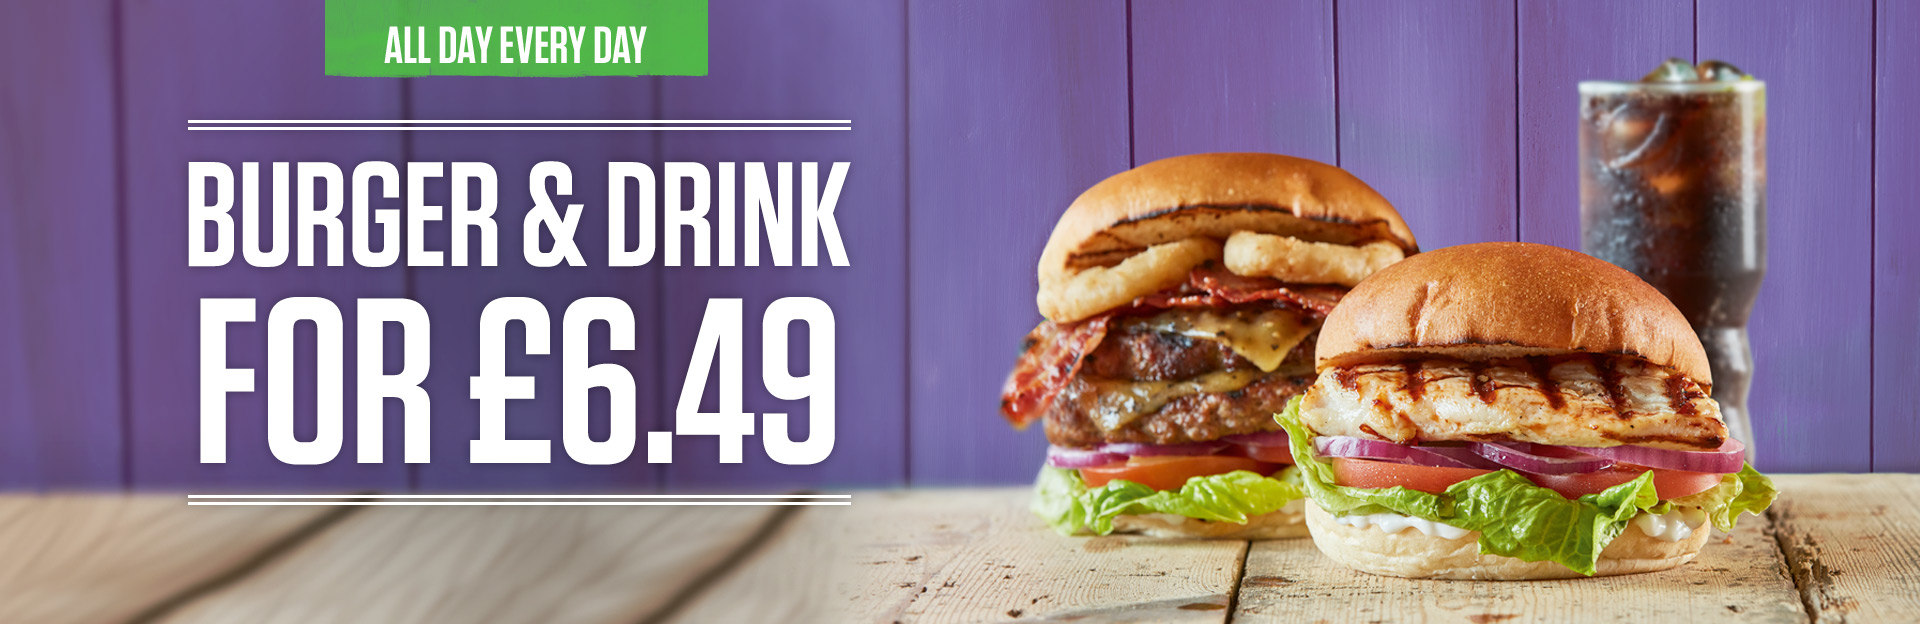 Burger and Drink Deal at Spirit Of Endeavour